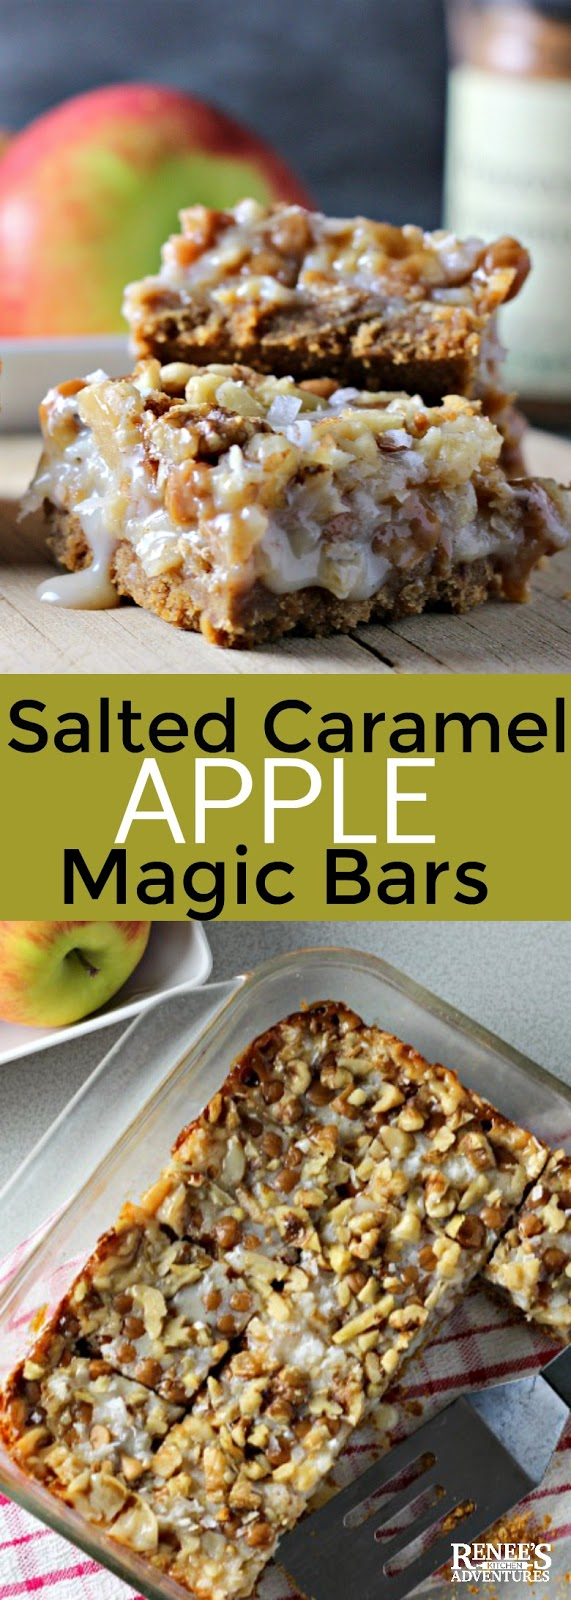 Salted Caramel Apple Magic Cookie Bars | Renee's Kitchen Adventures - an easy dessert recipe that takes the classic Magic Cookie Bar Recipe and transforms it into a tasty Fall flavored one with apples, caramel, and cinnamon. #apple #caramel #cookie #cookiebar #recipe #barcookies #fall